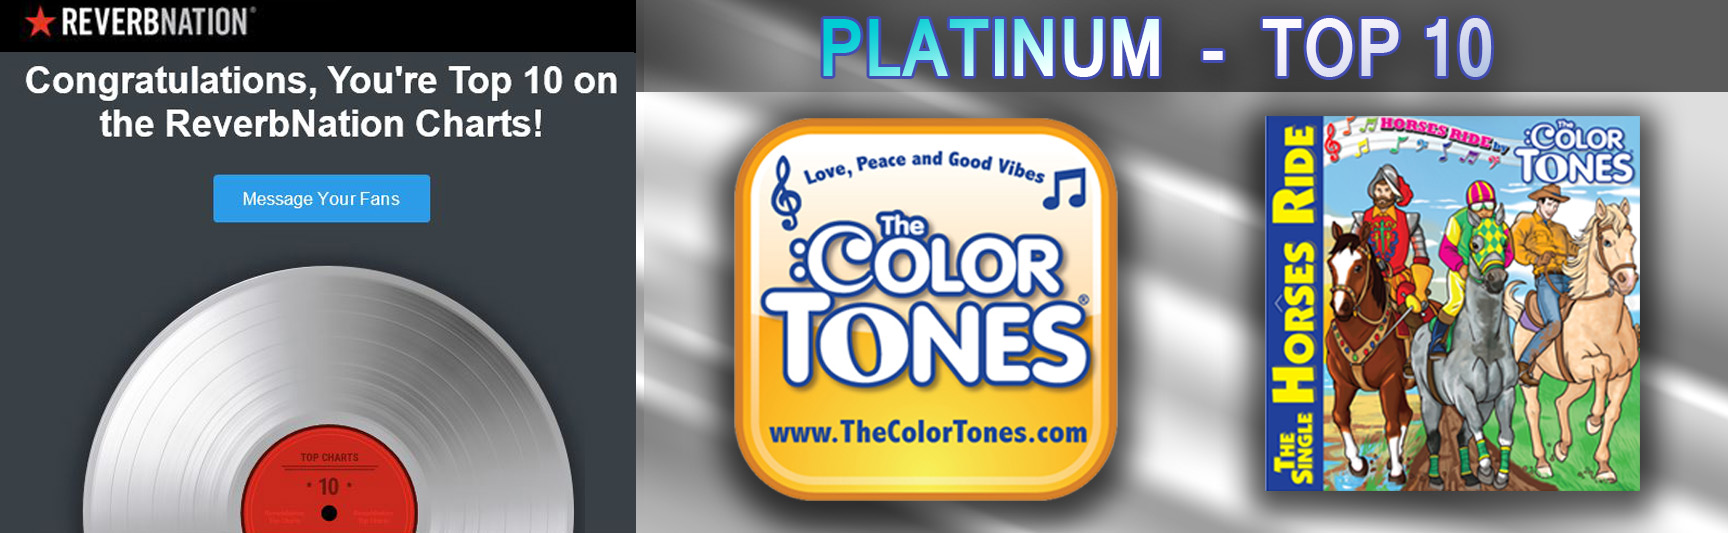 Reverbnation - Top 10 - The Color Tones - Horses Ride